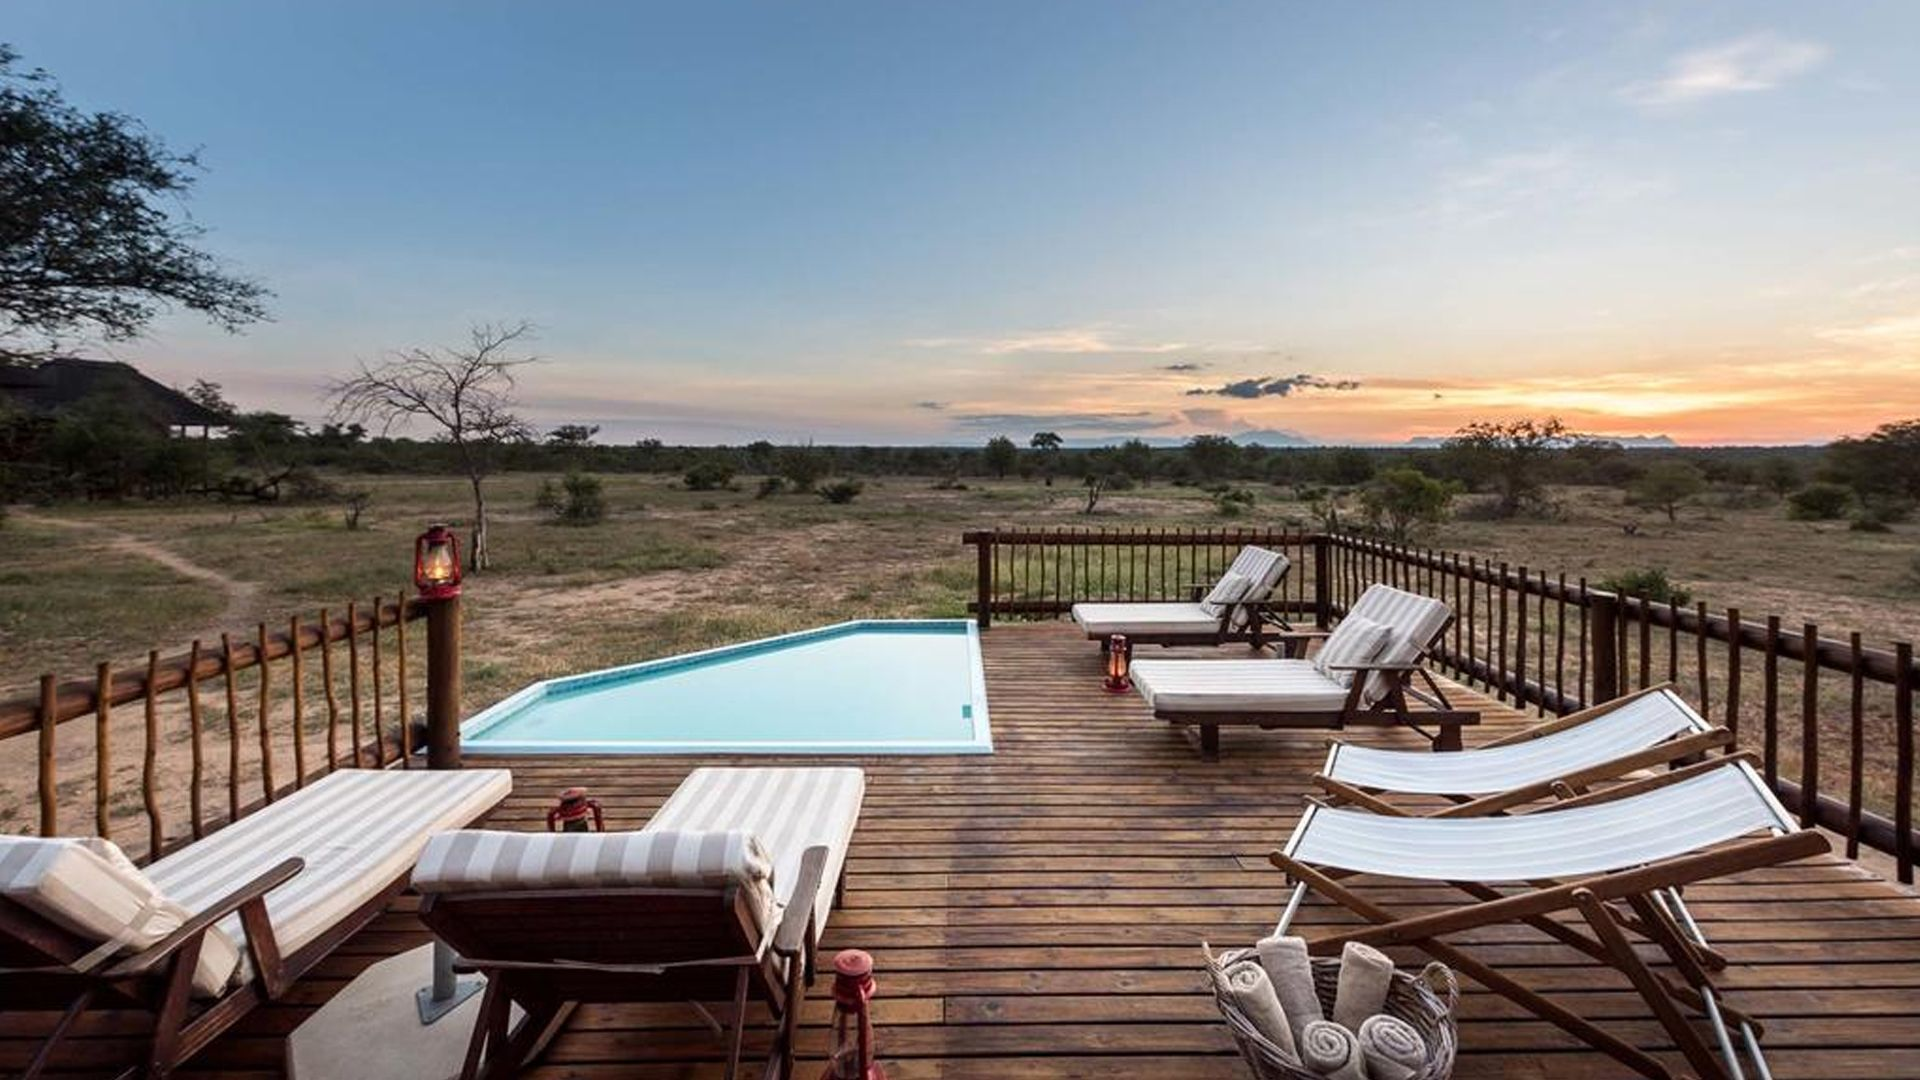 Safari lodge nThambo Tree Camp 1